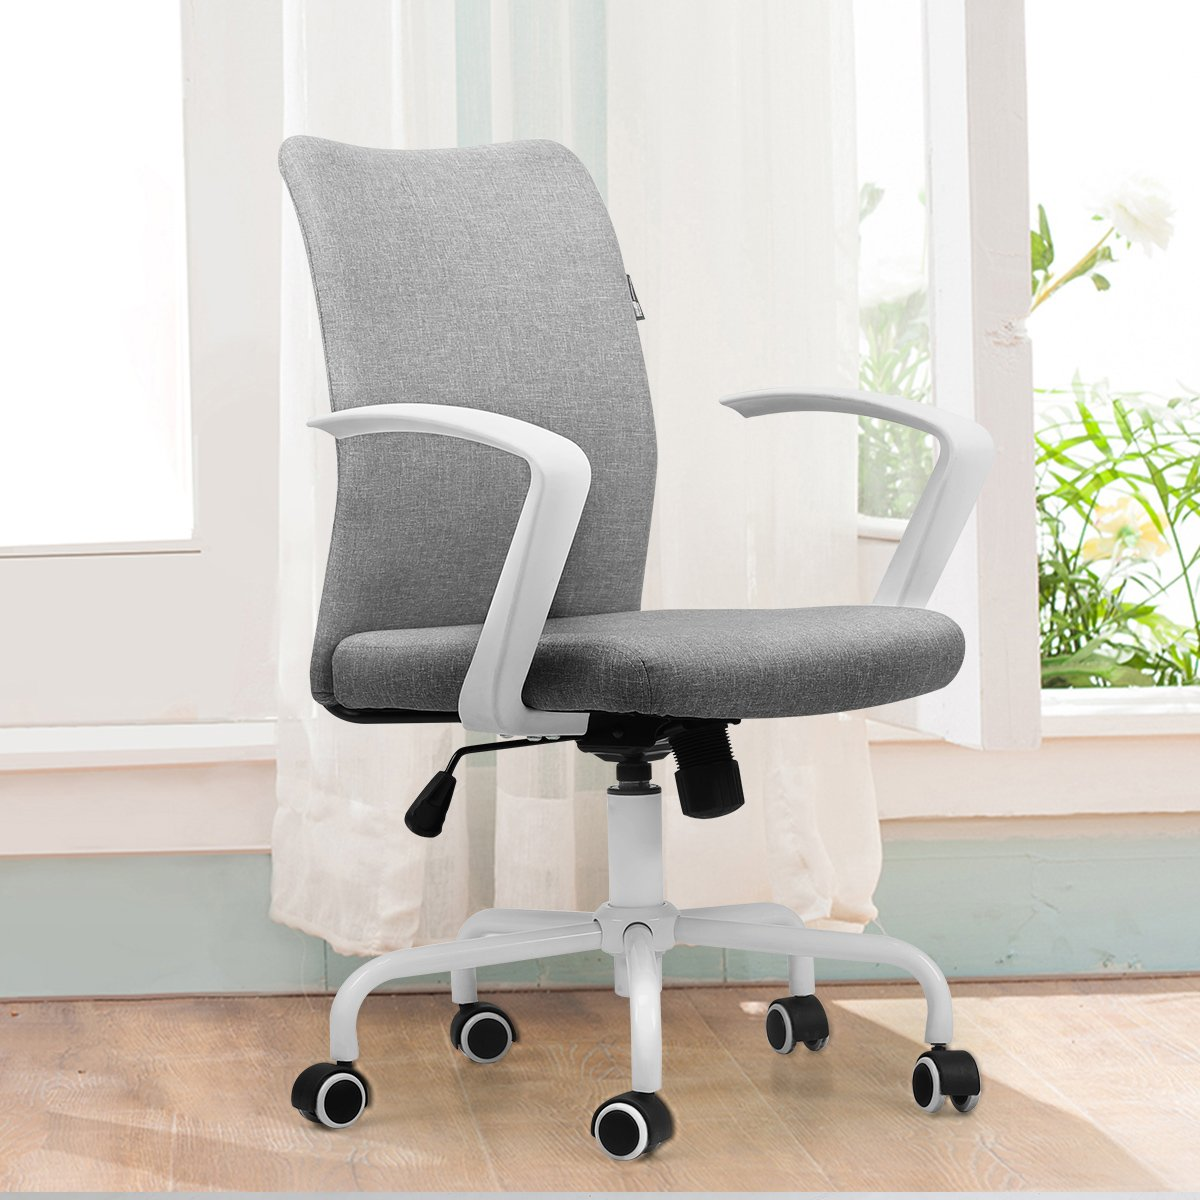 Hbada Desk Task Computer Chair - Modern Fabric Low Back Office Chair with Adjustable Height, for Reception Dinning Conference Room, Grey